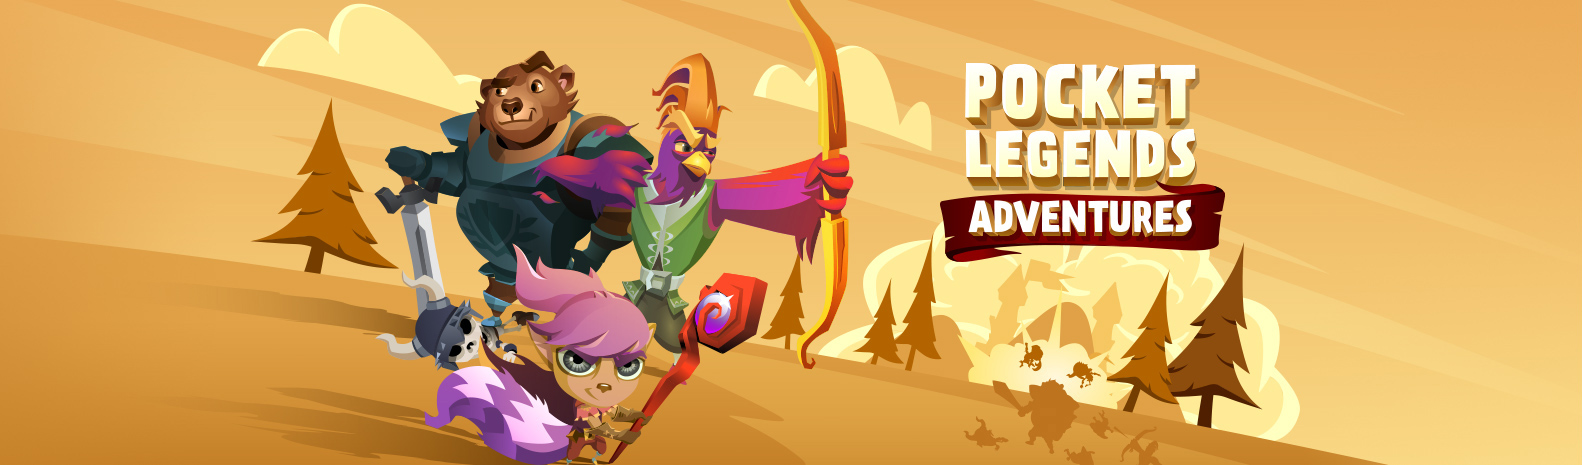 Pocket Legends Adventures Hero